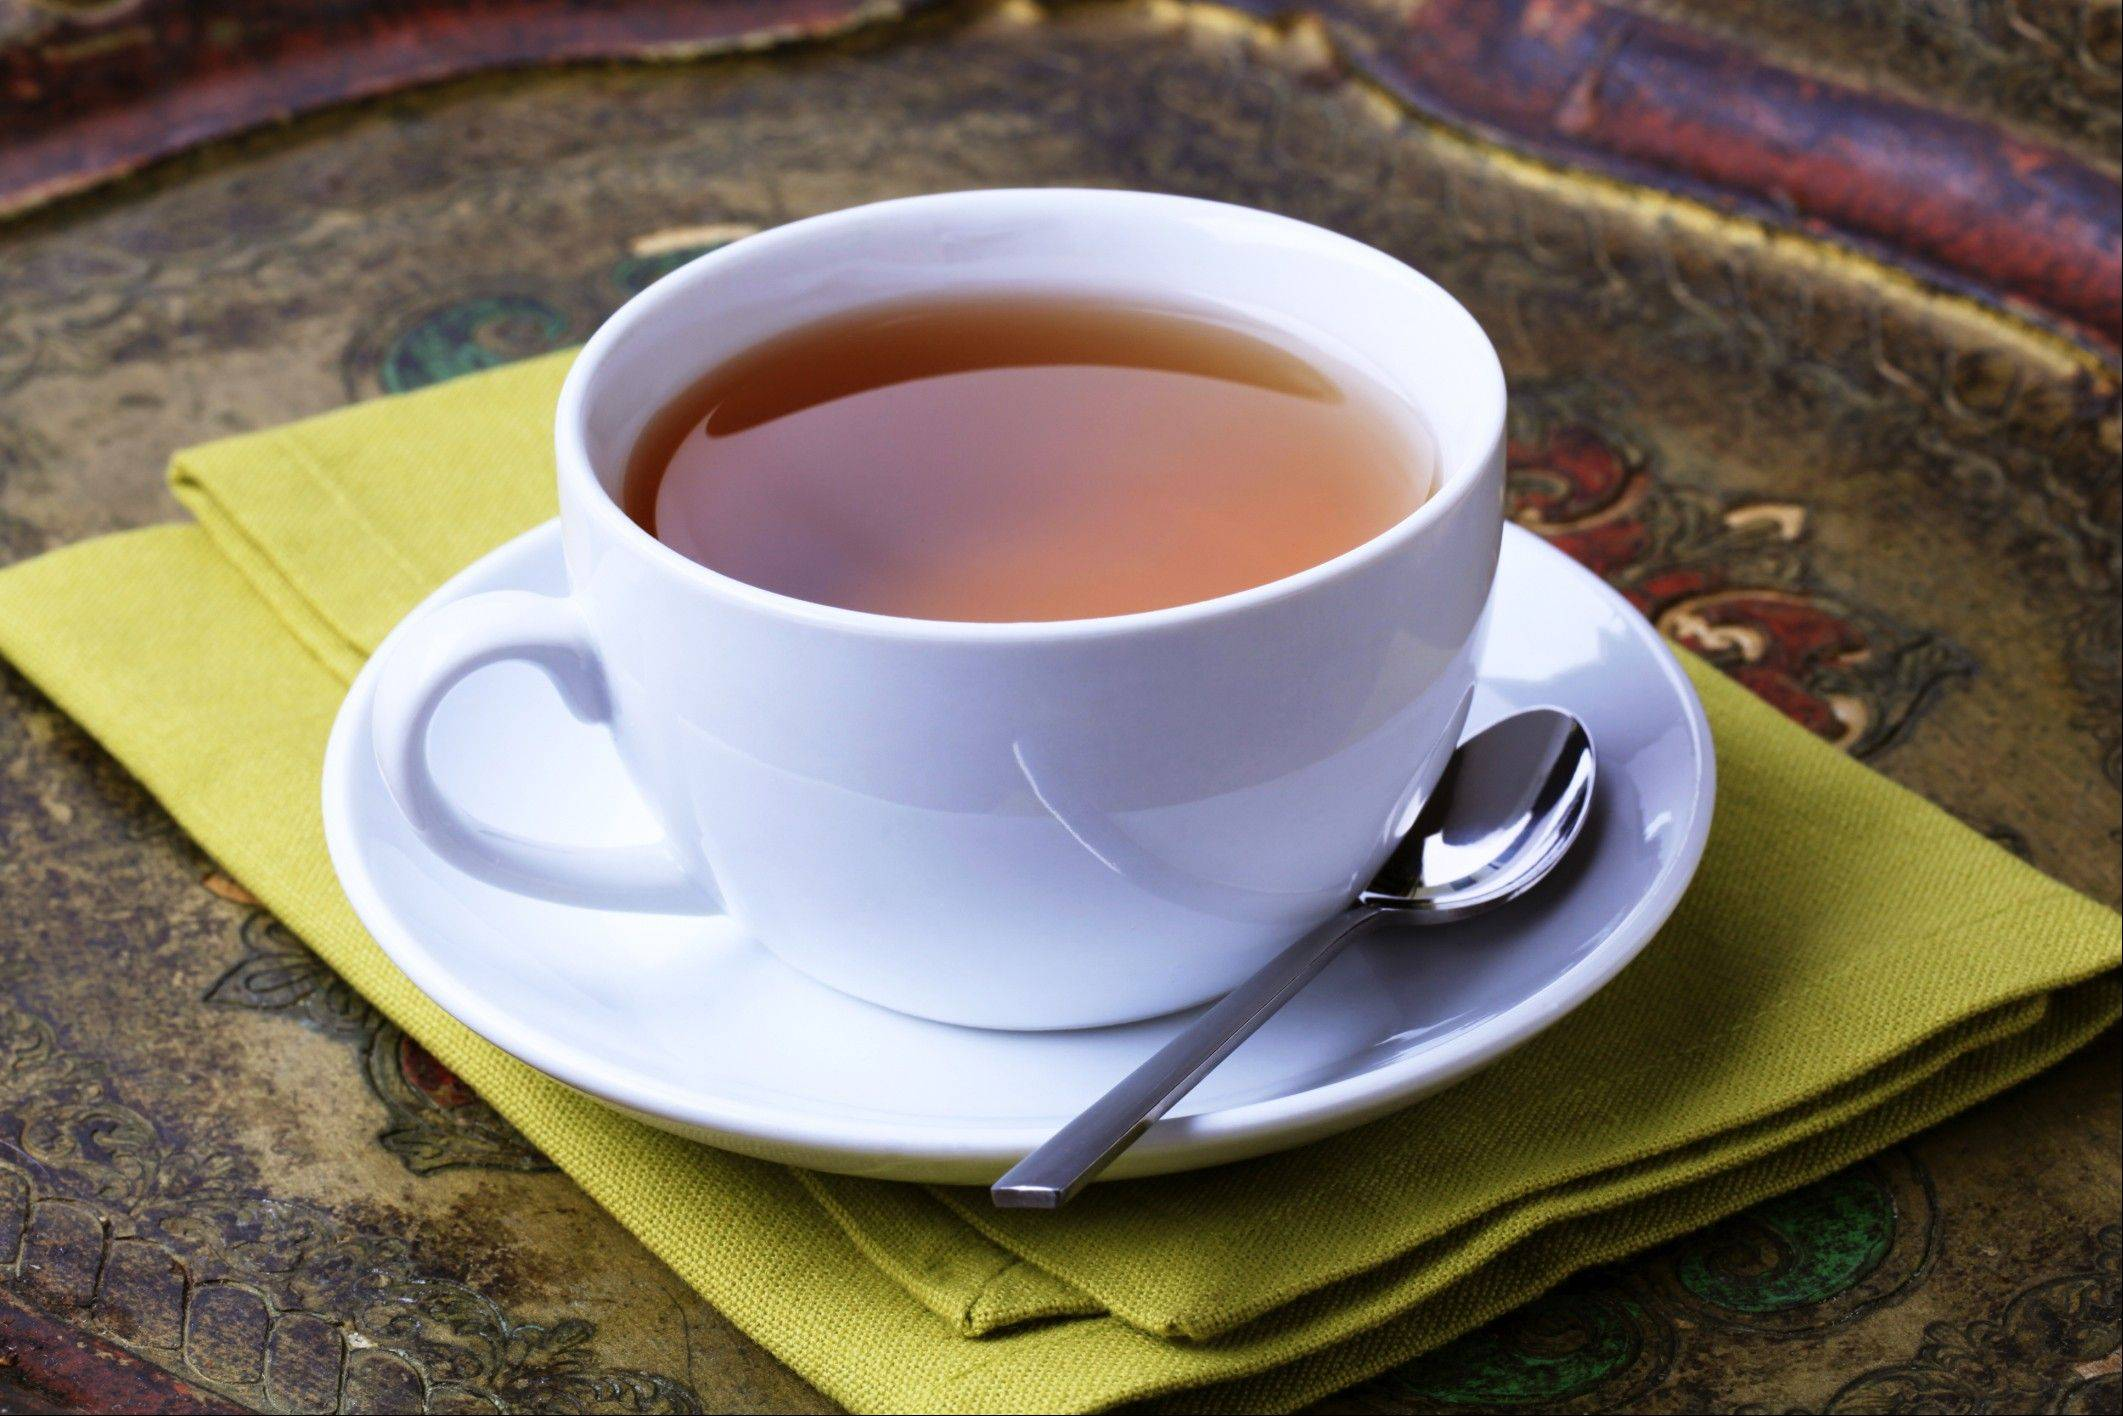 More people are drinking tea because of its health benefits.